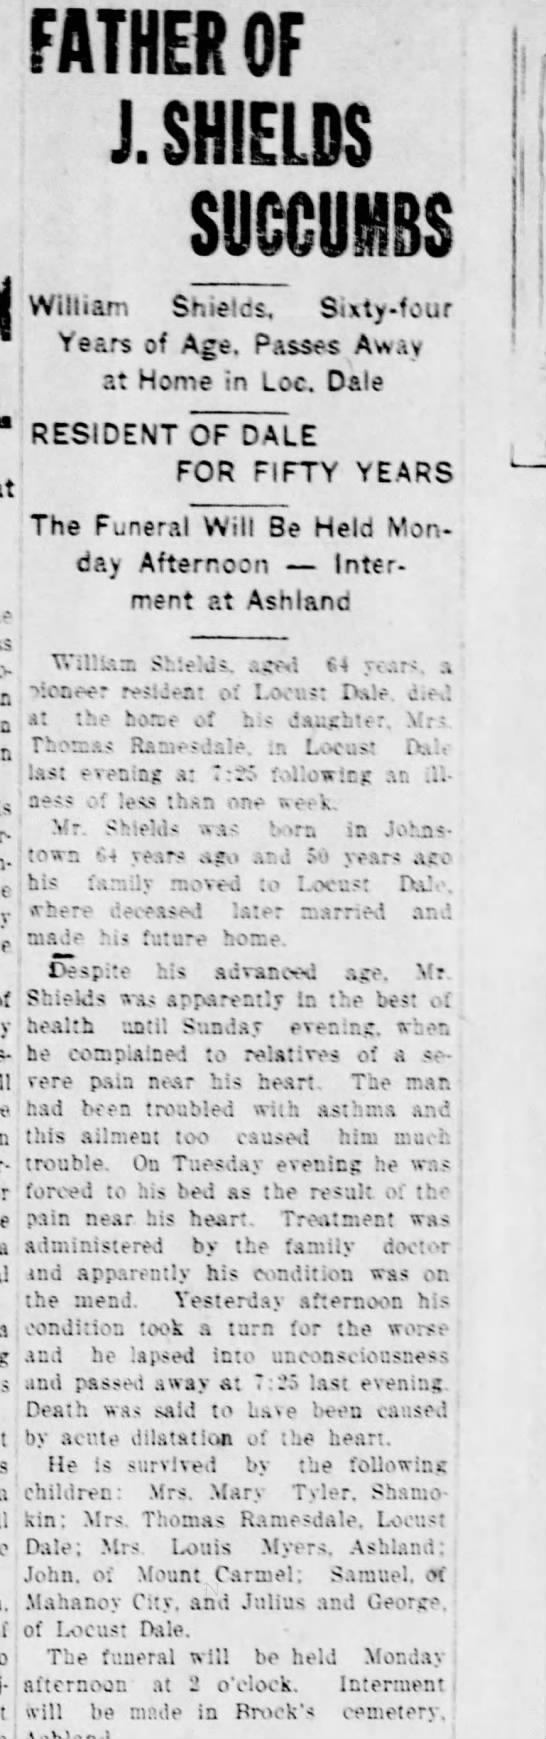 20 Nov 1925 The Daily News of Mount Carmel, PA - FATHER OF J. SHIELDS SUCCUMBS William Shields,...